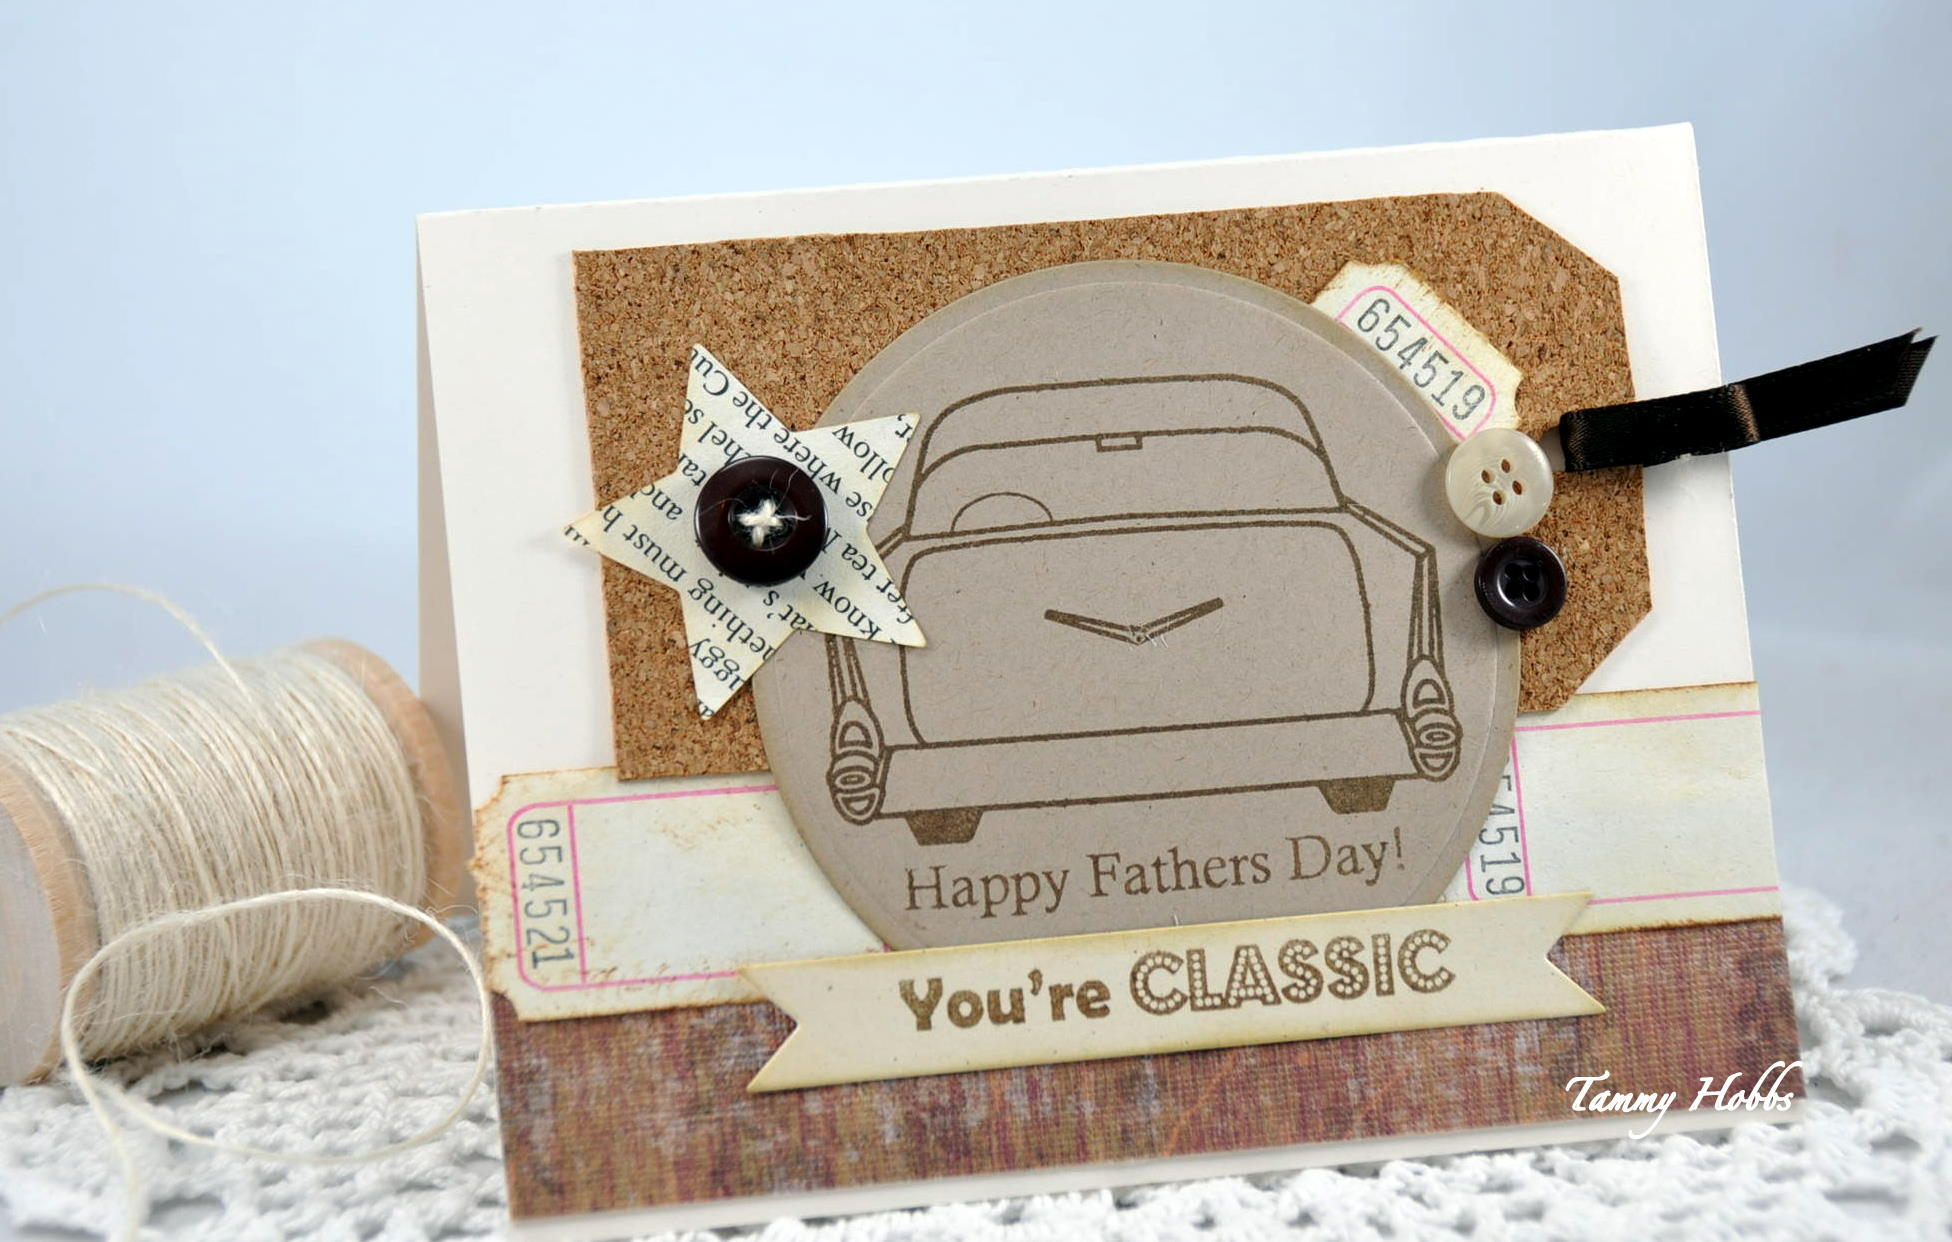 Happy Father's Day : You're Classic